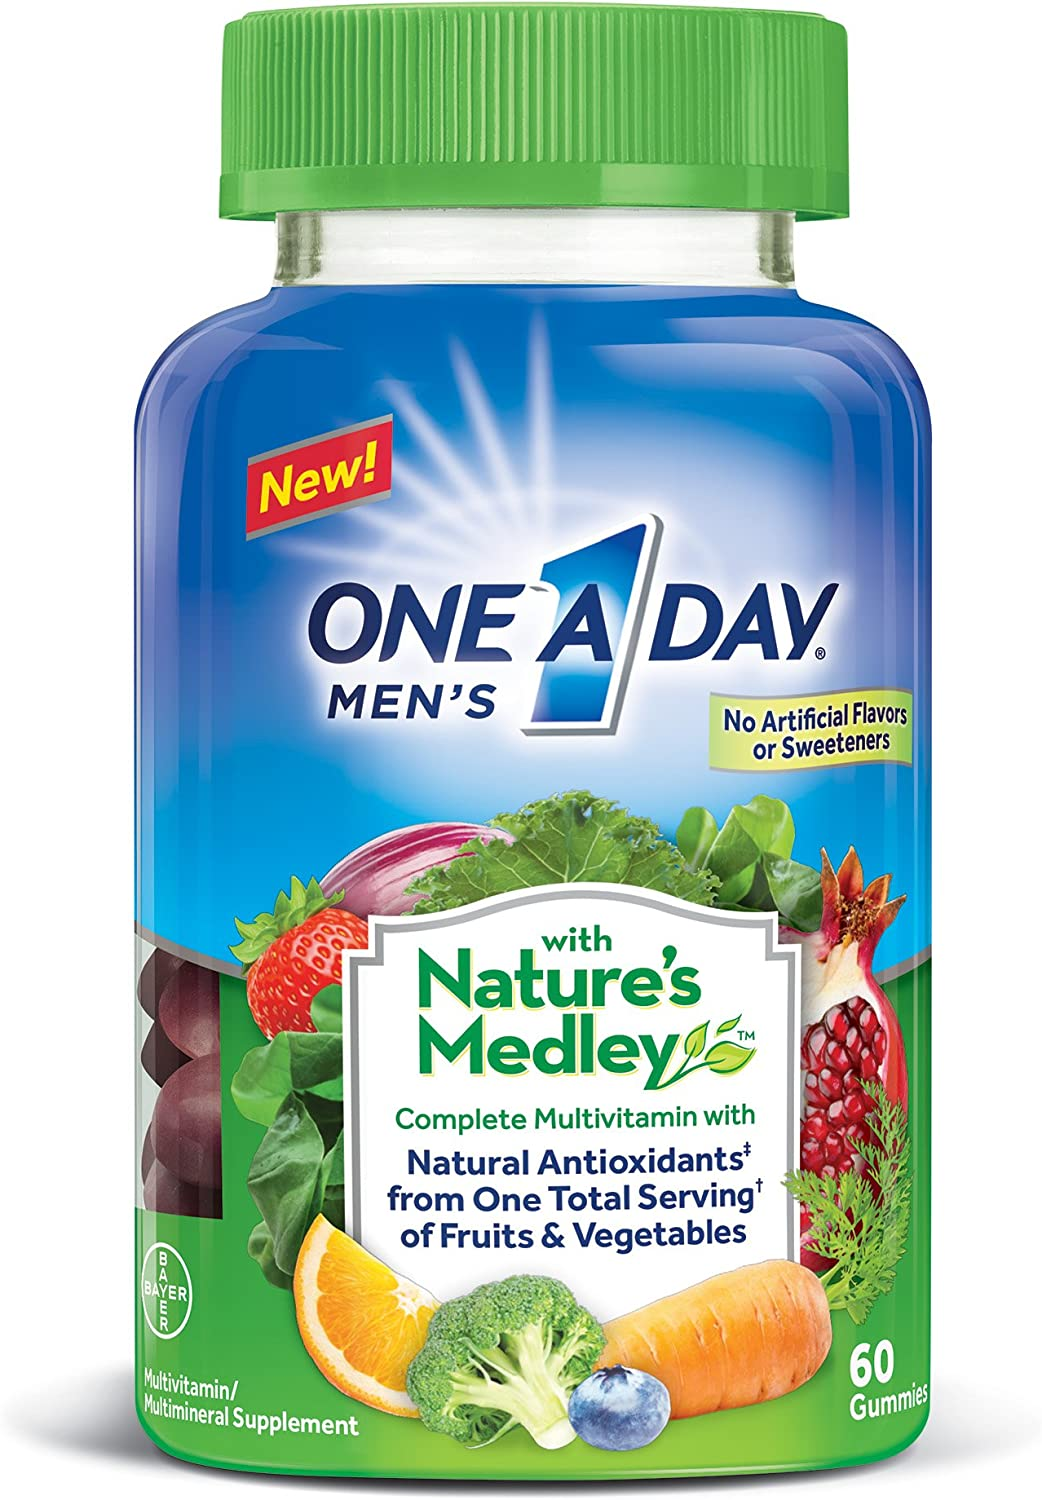 One A Day Men's with Nature's Medley Complete Multivitamin Supplement Gummies, 60 Count